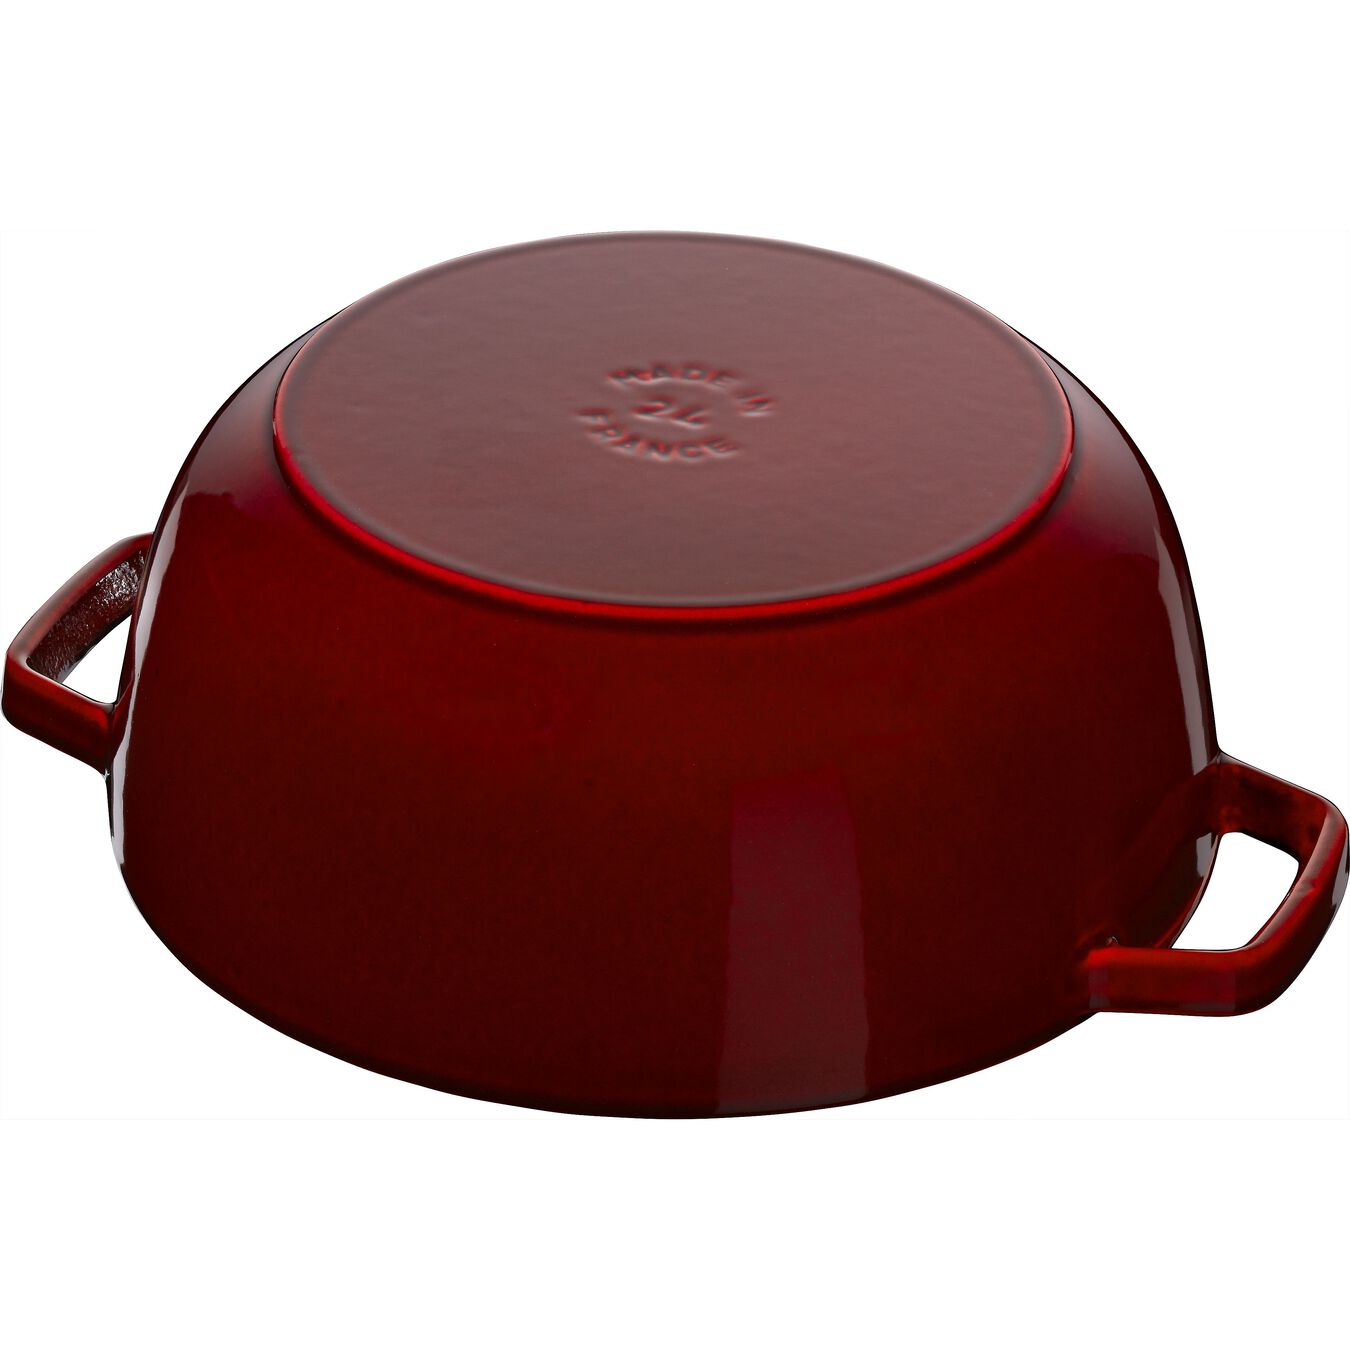 5 l Cast iron round Cocotte, Grenadine-Red,,large 4